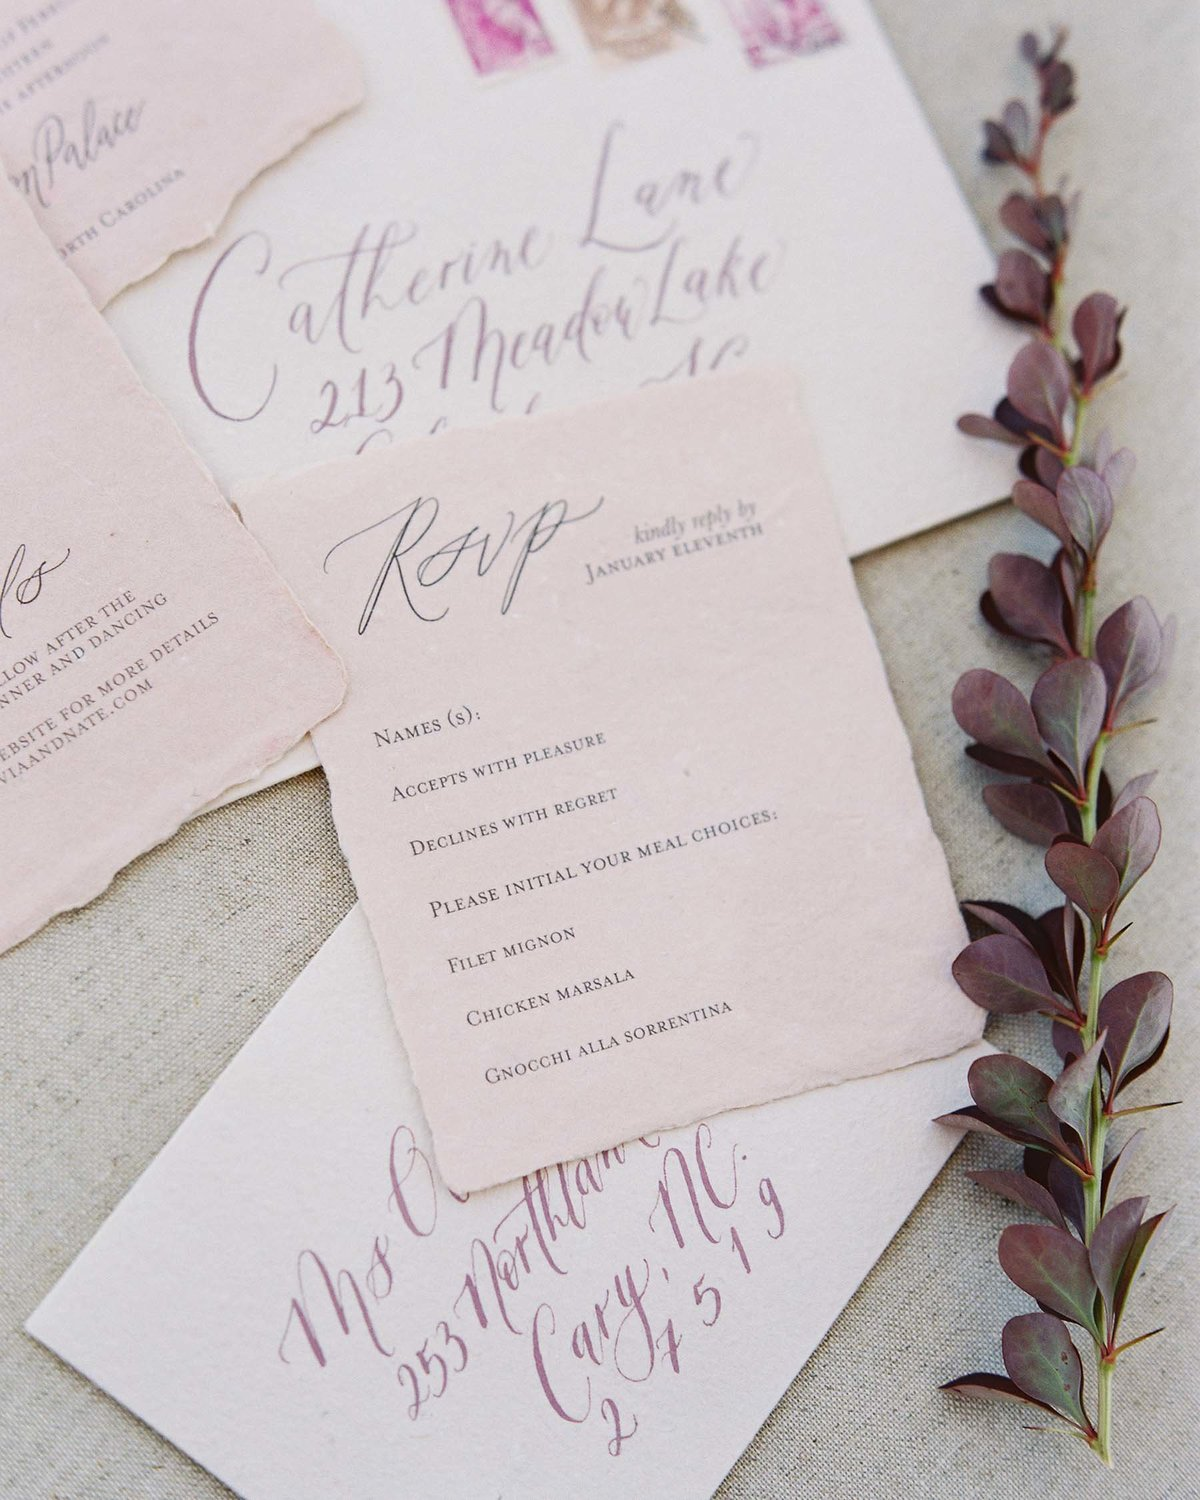 Plume & Fete timeless and elegant wedding invitation suite rsvp card